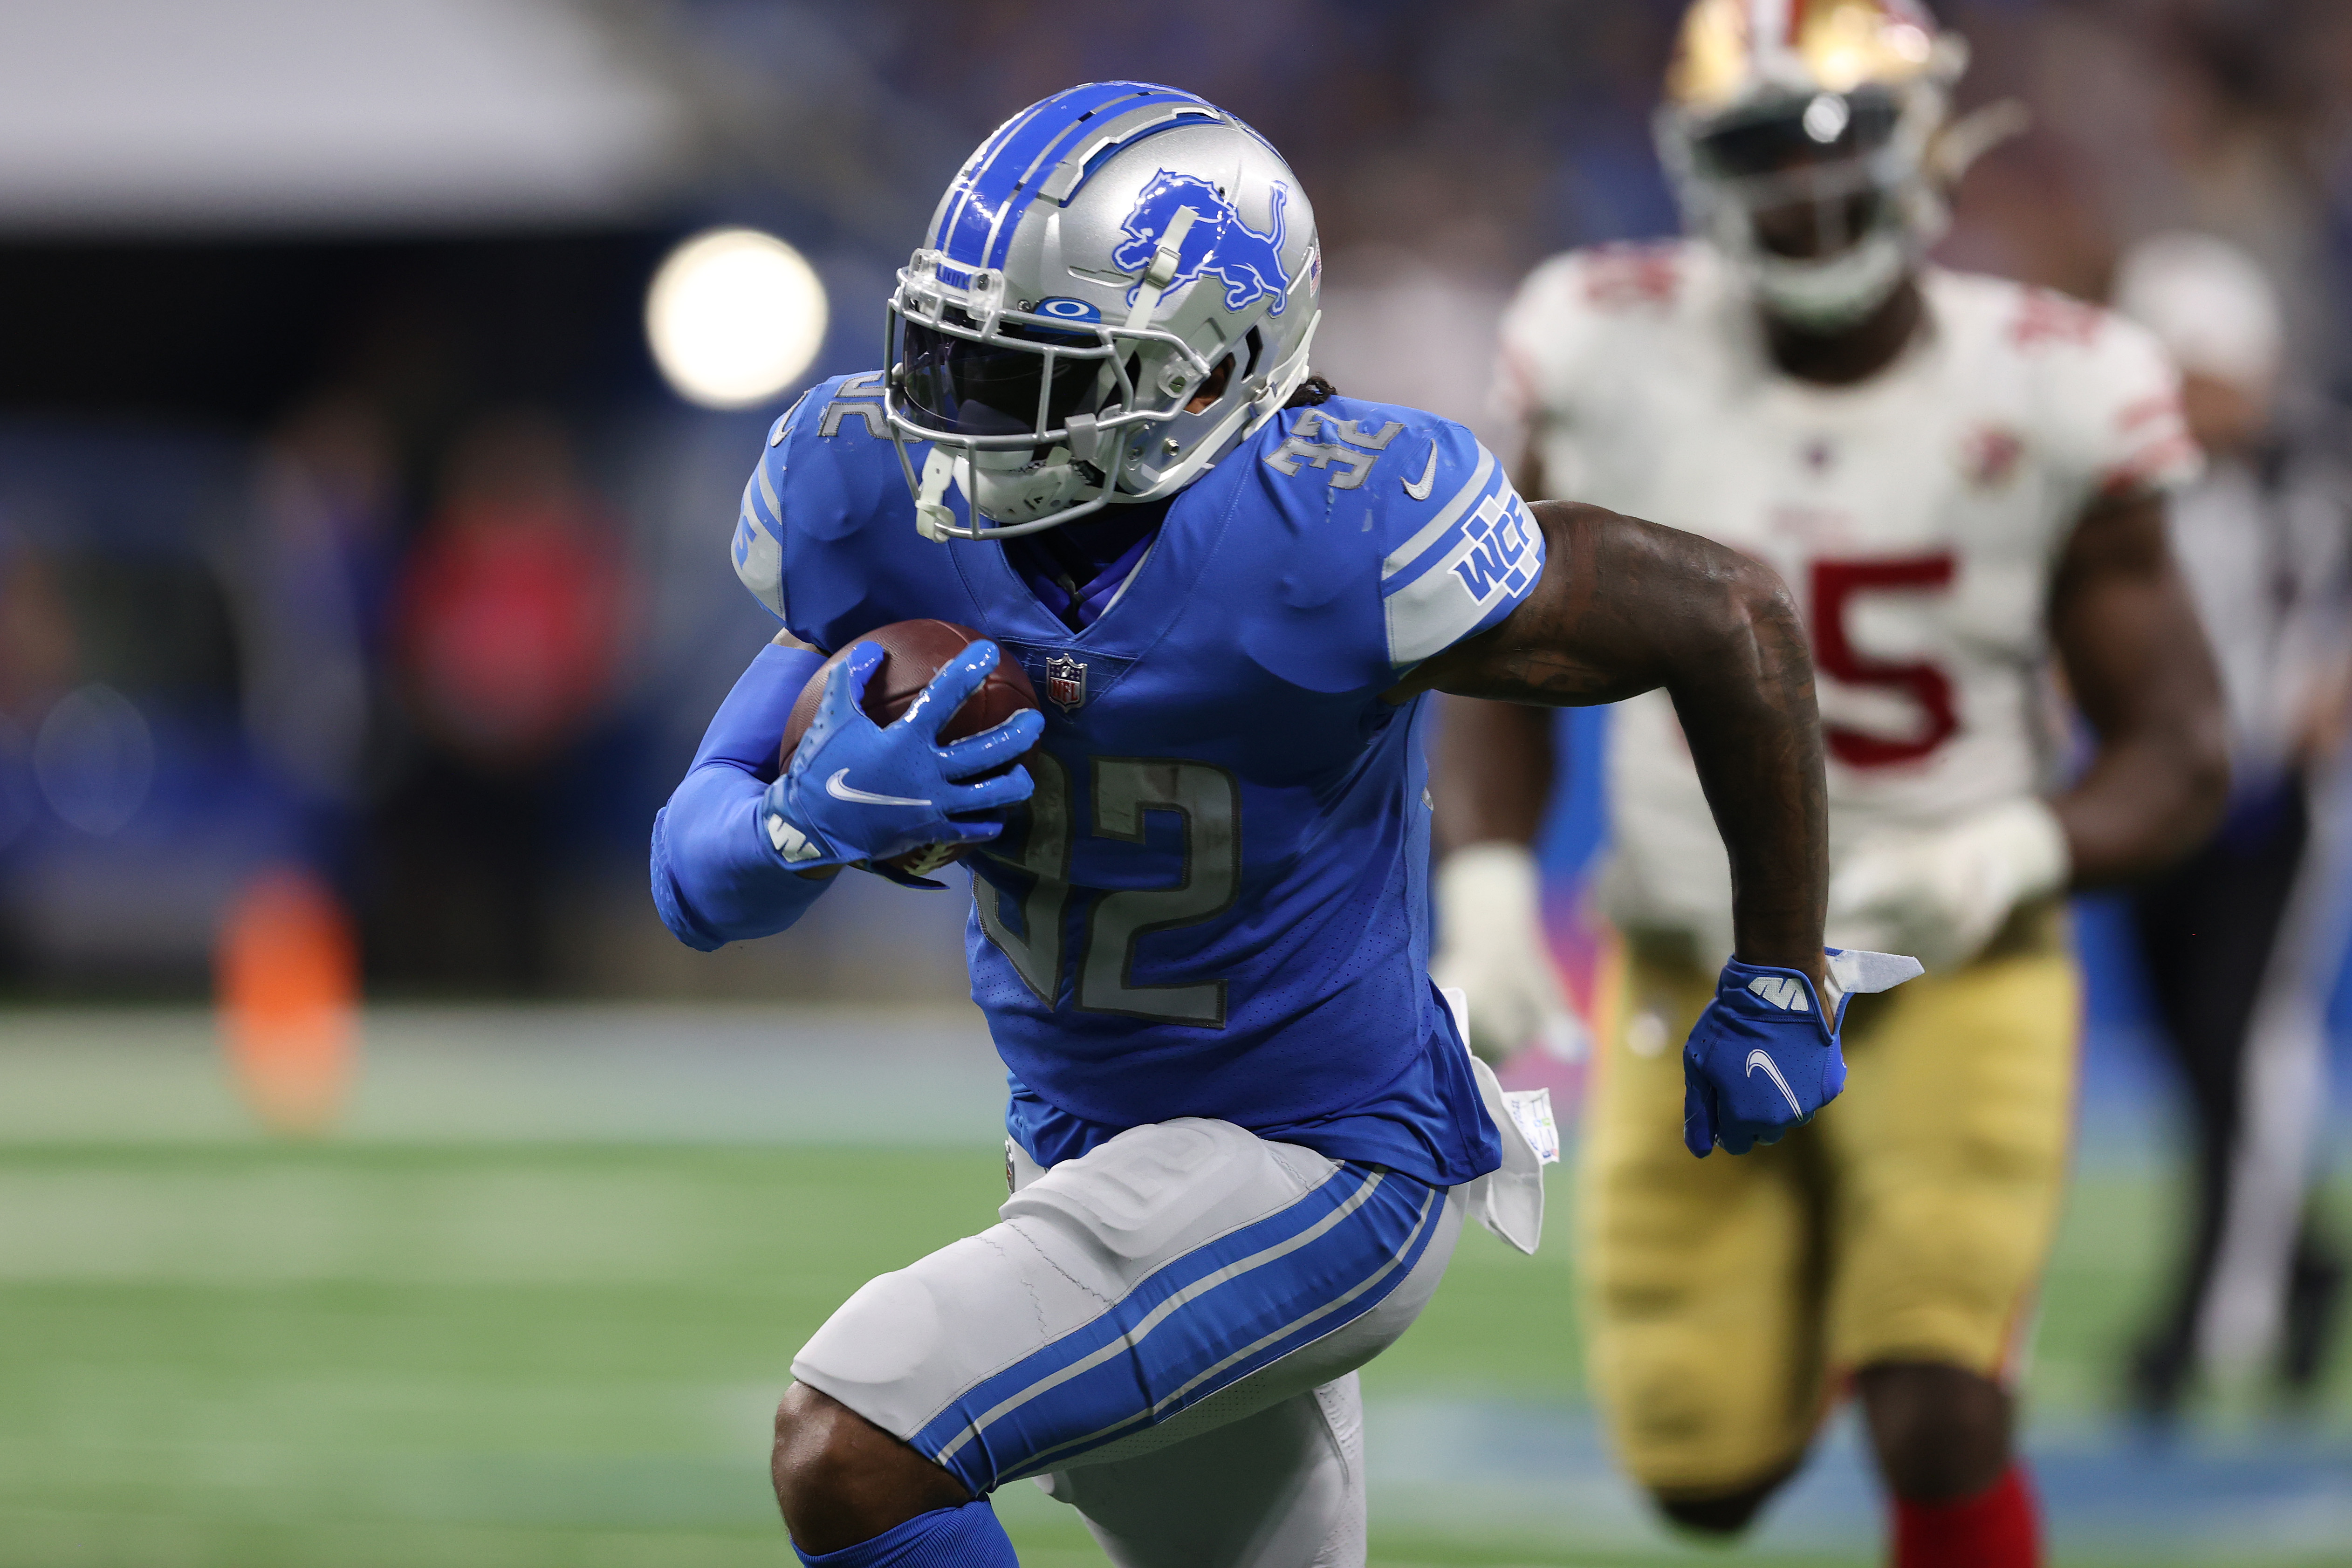 D'Andre Swift #32 of the Detroit Lions plays against the San Francisco 49ers at Ford Field on September 12, 2021 in Detroit, Michigan.